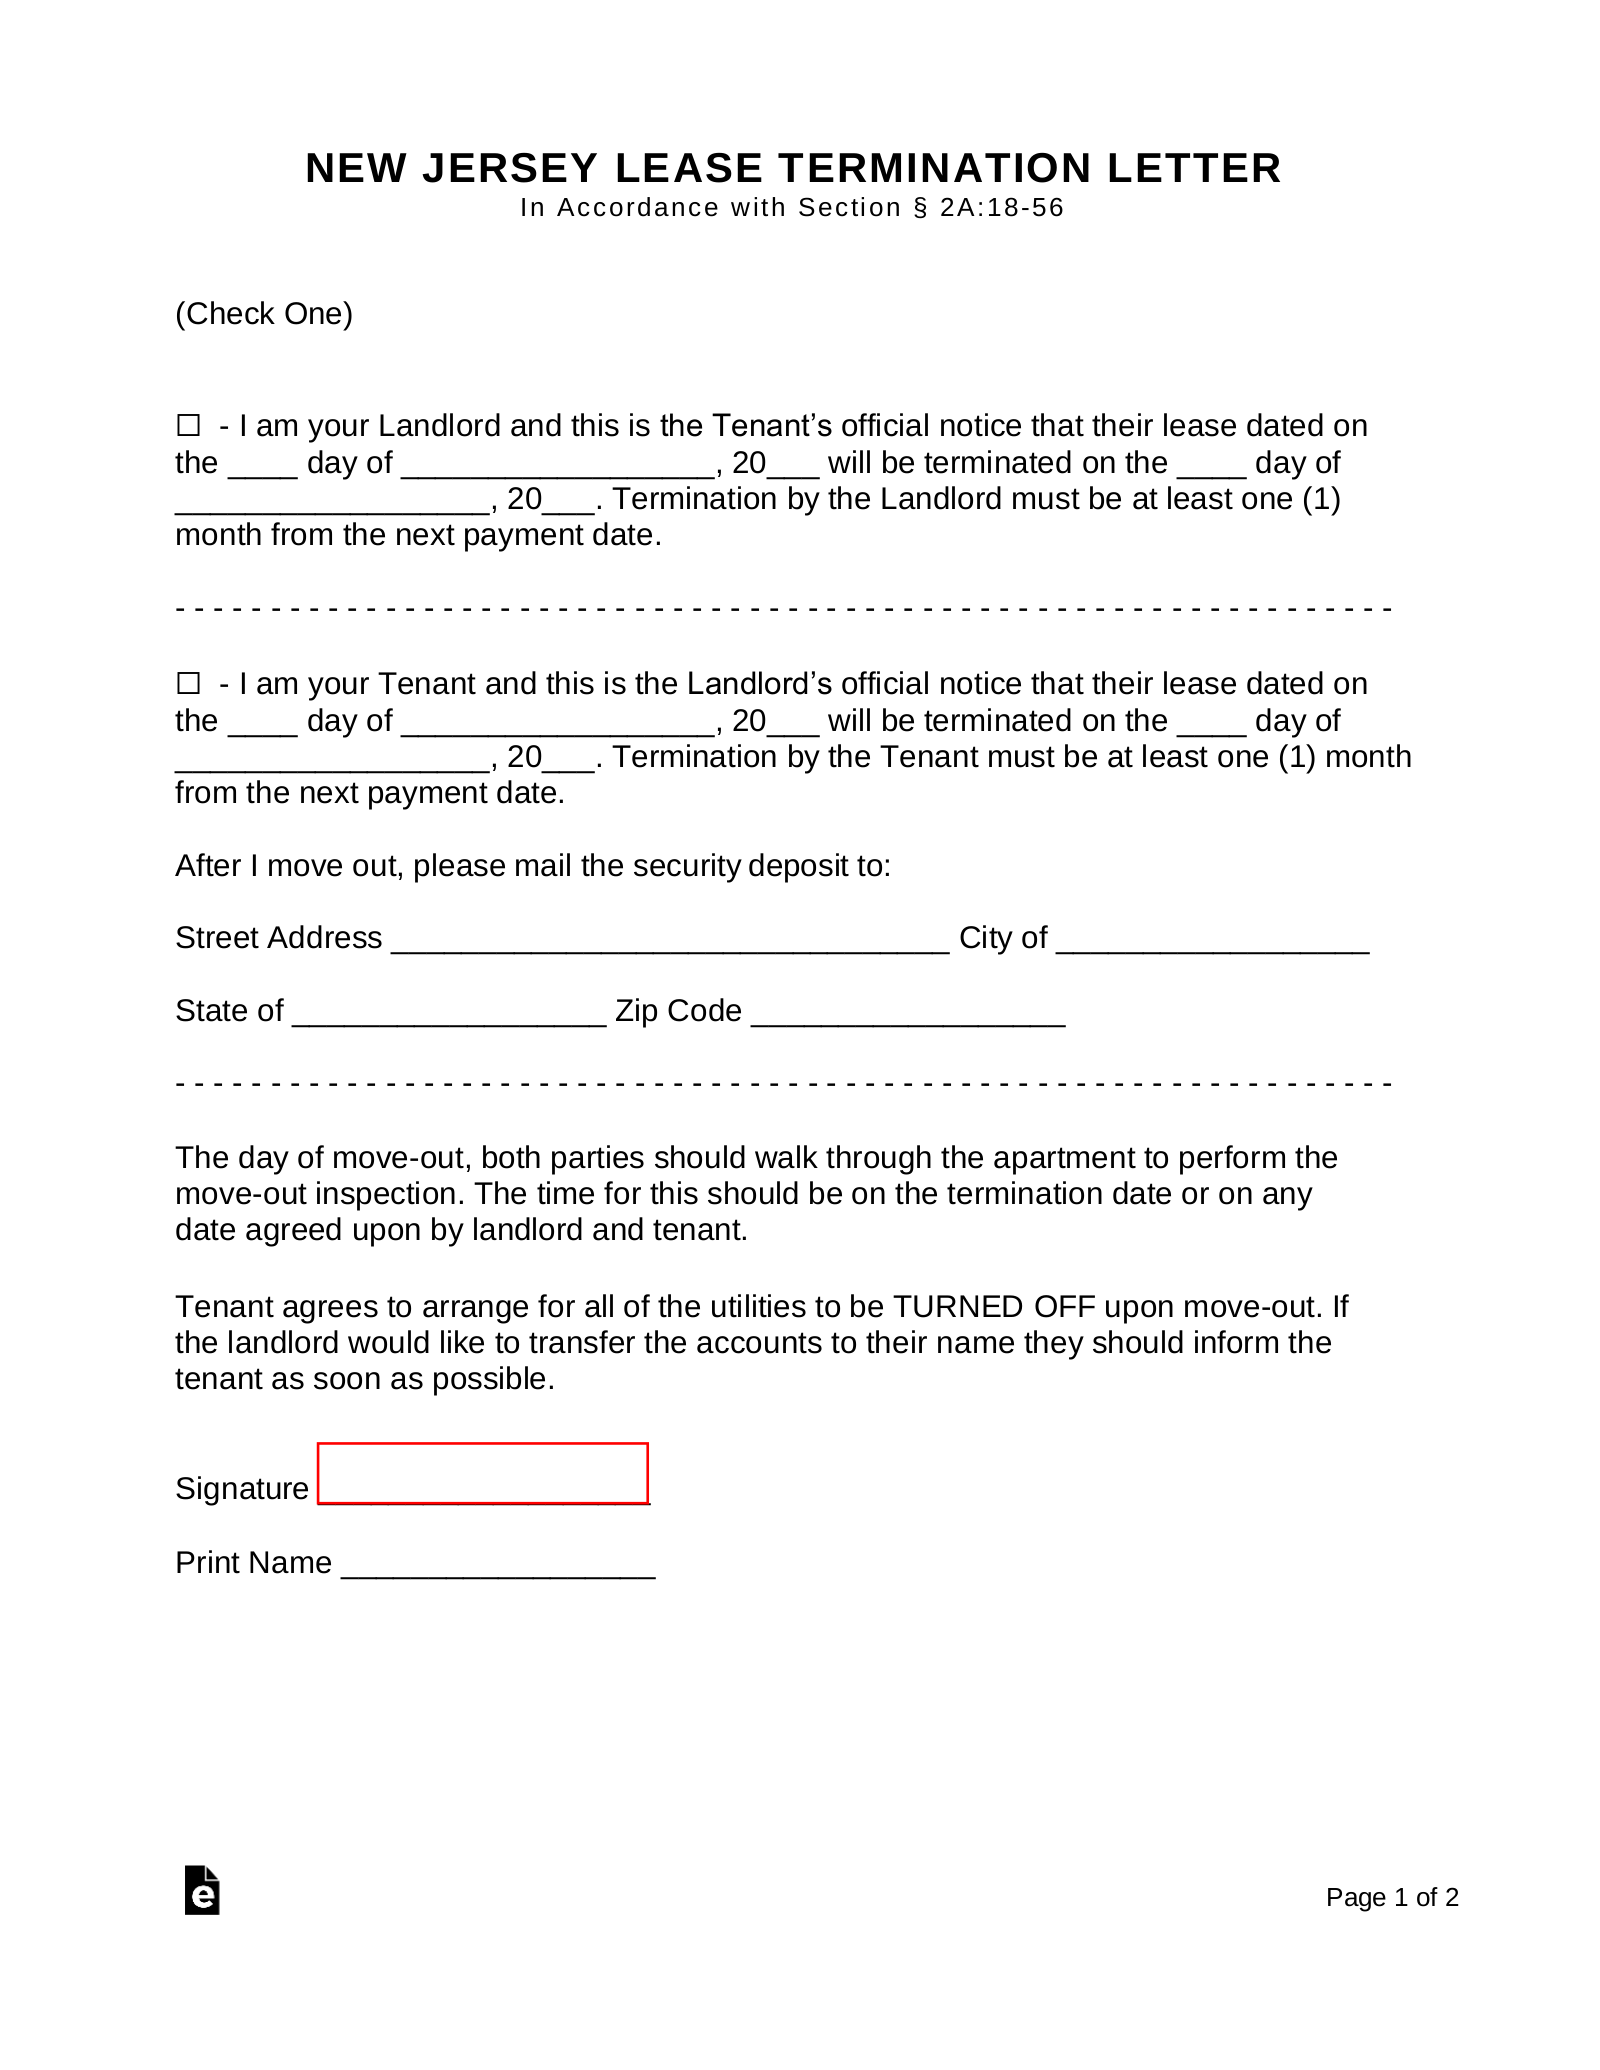 Sample Letter To Landlord Moving Out from eforms.com